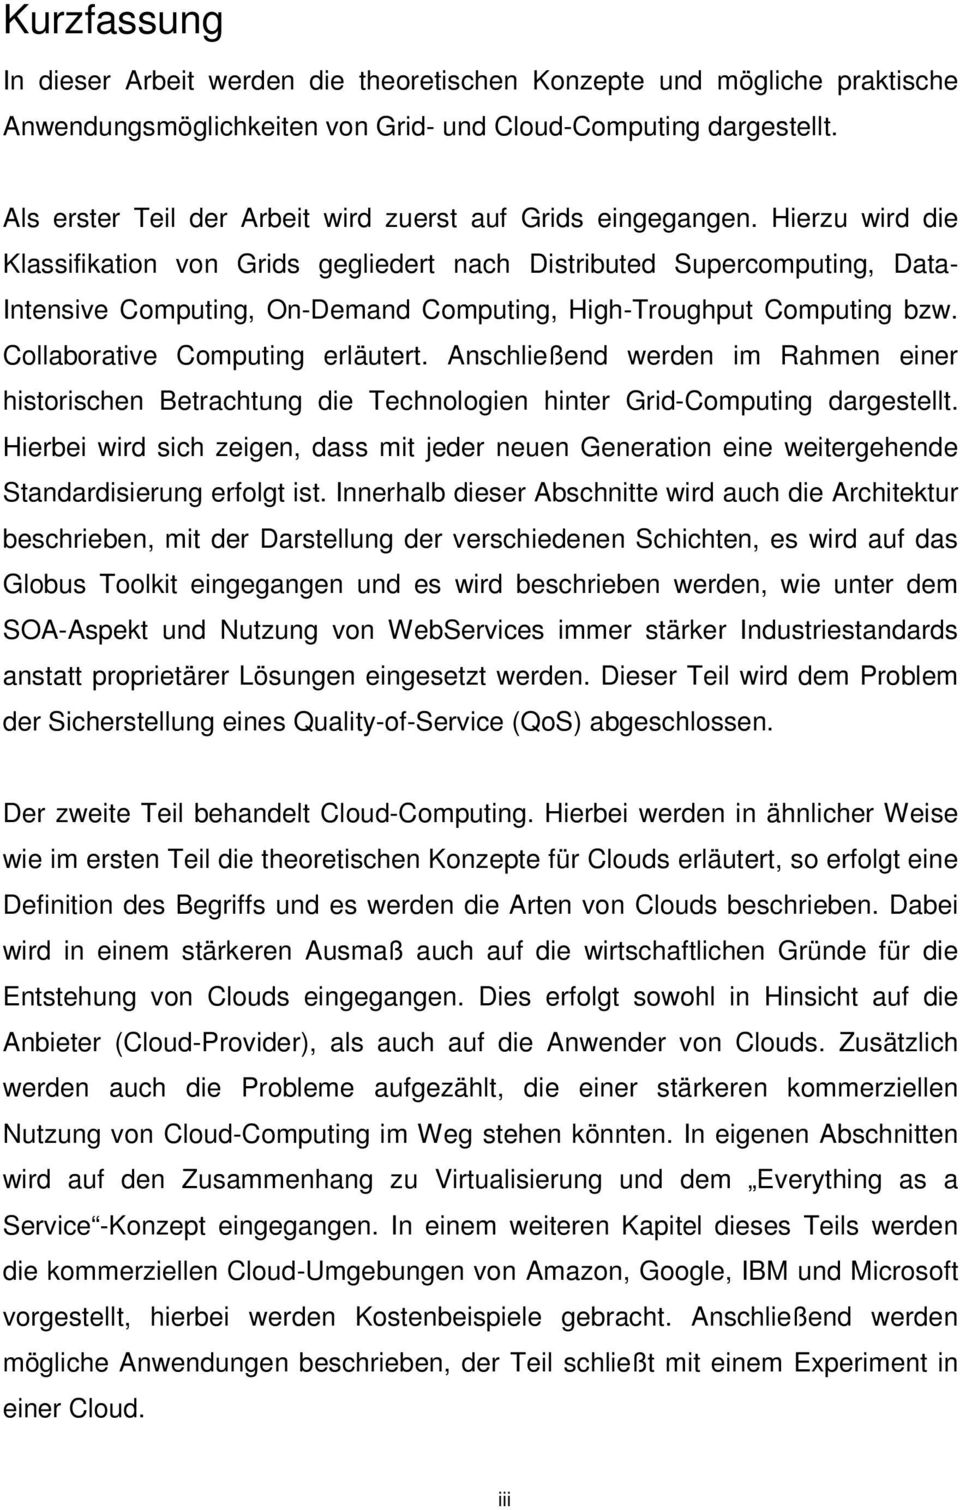 Hierzu wird die Klassifikation von Grids gegliedert nach Distributed Supercomputing, Data- Intensive Computing, On-Demand Computing, High-Troughput Computing bzw. Collaborative Computing erläutert.